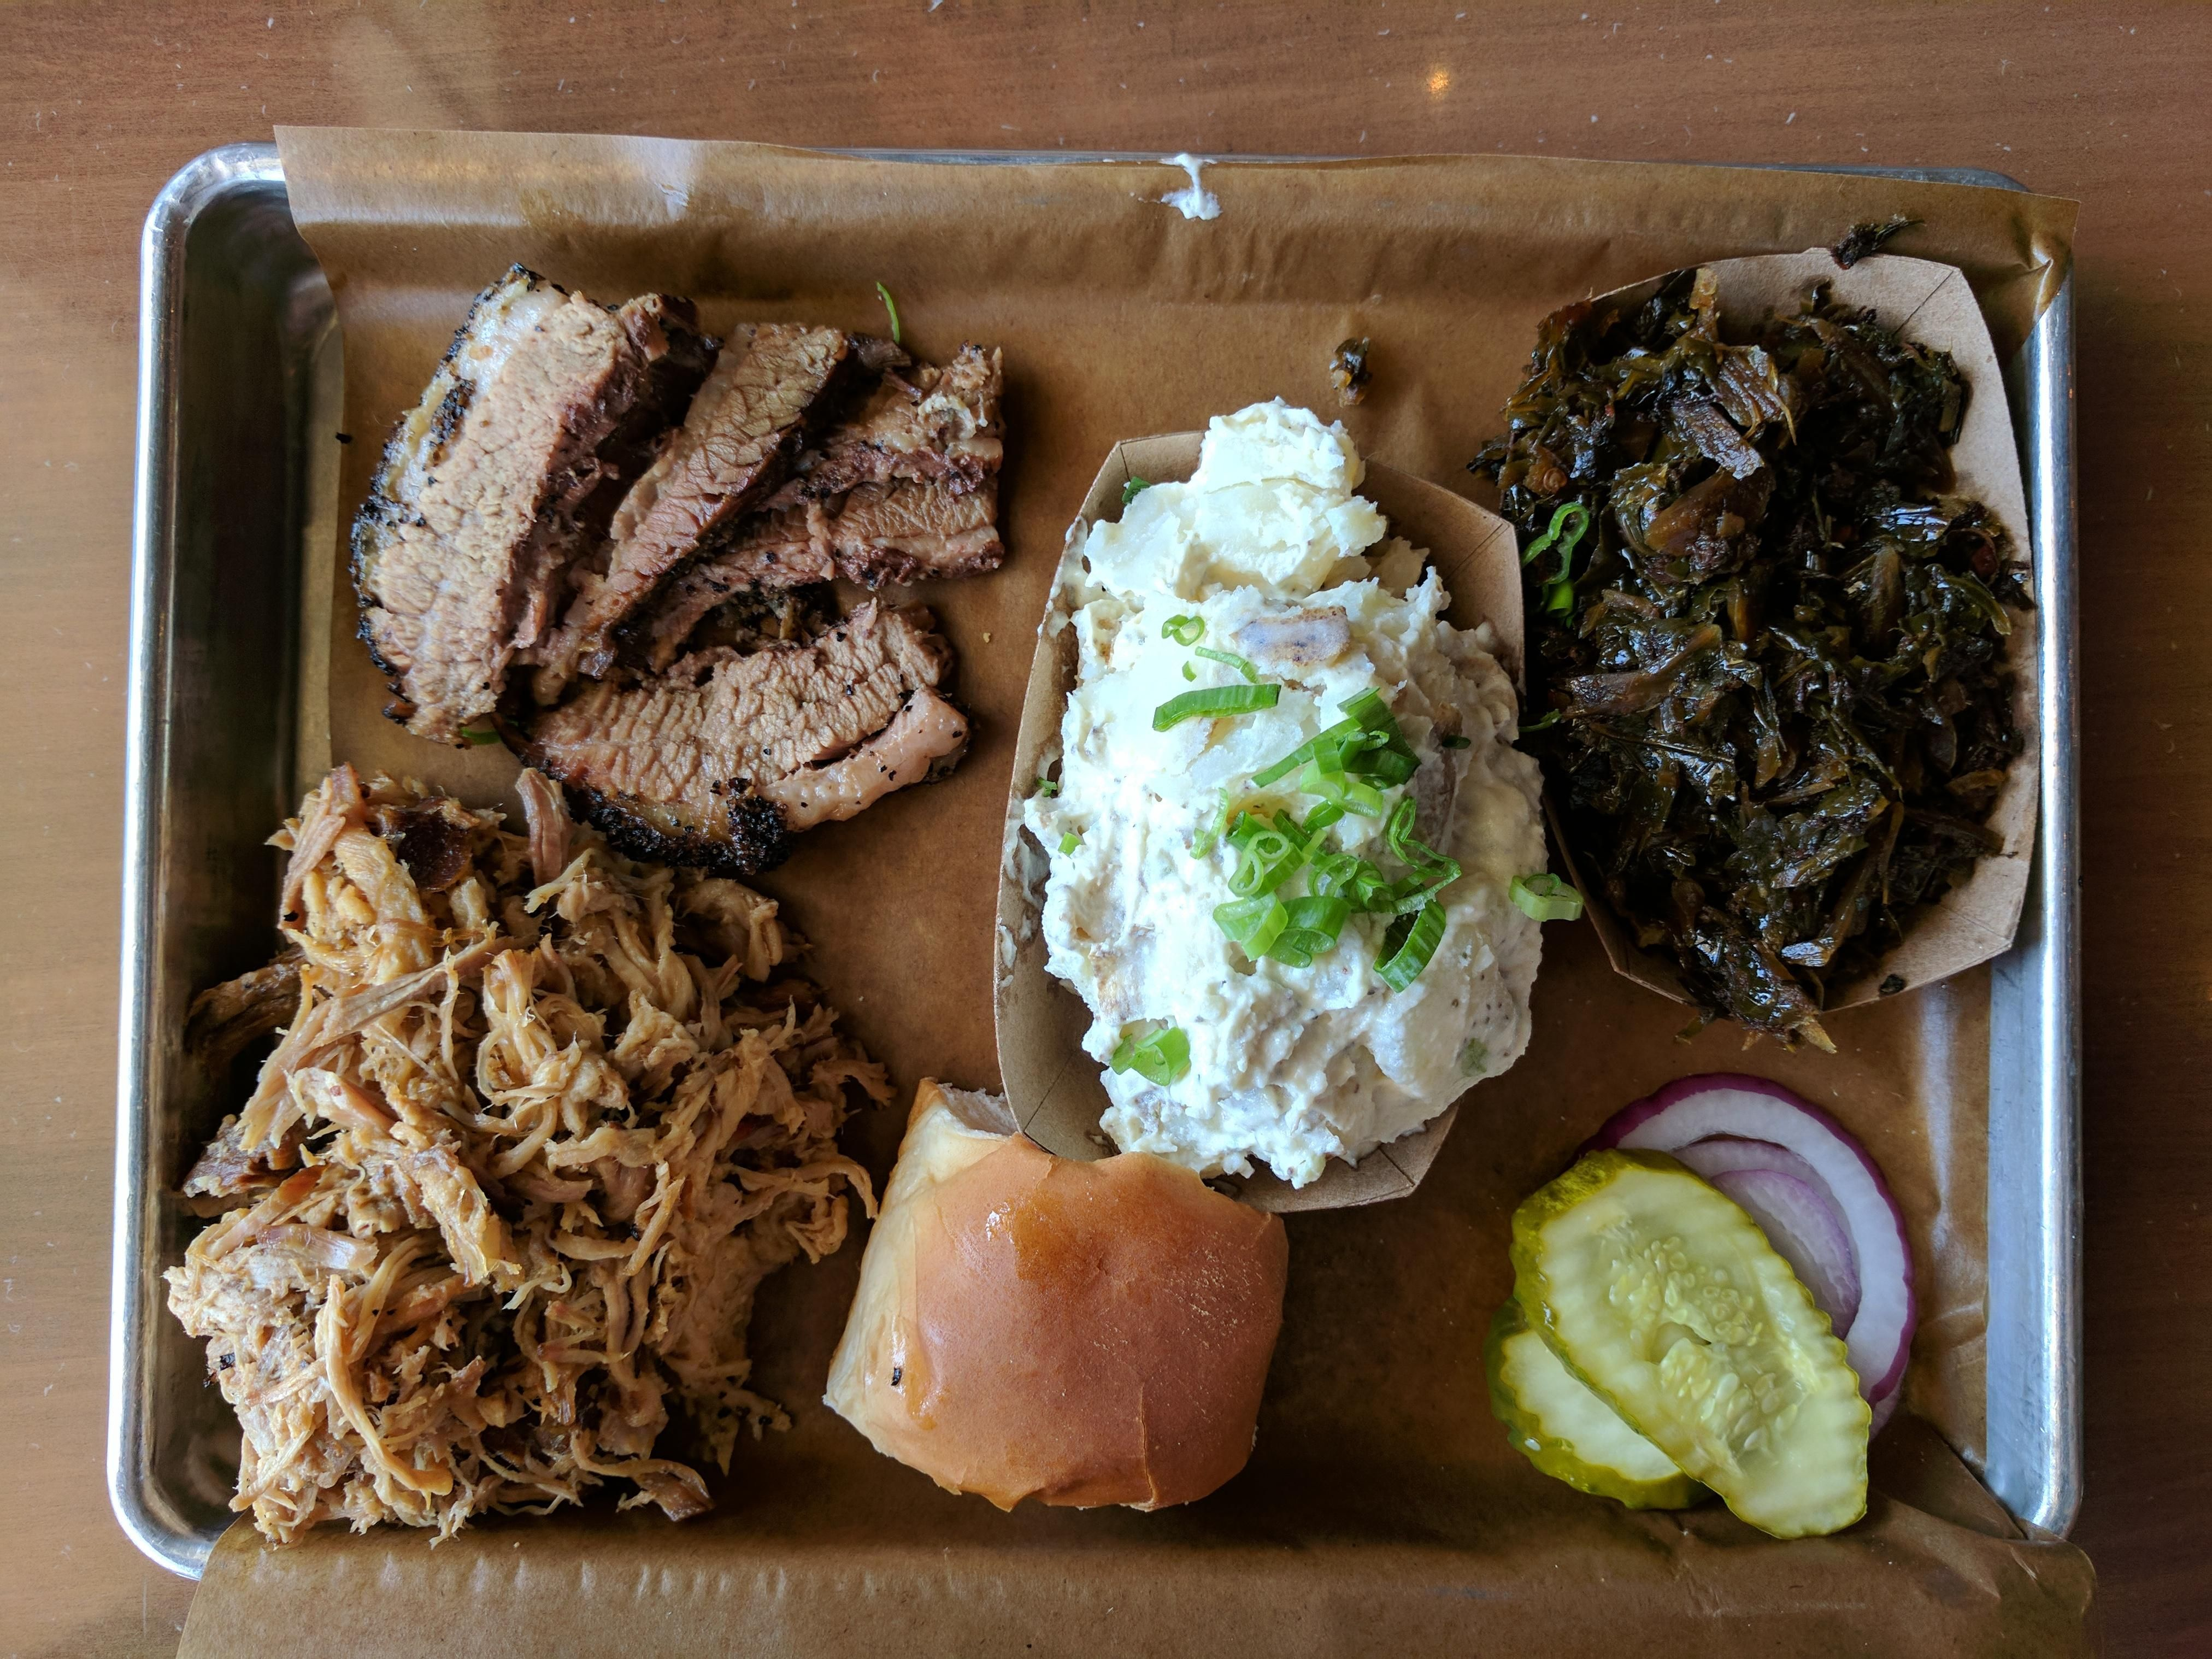 I Ate Feast Bbq Louisville Ky Pulled Pork Brisket Potato Salad And Greens Recipes Food Cooking Delicious Foodie Foodre Food Pork Brisket Pulled Pork